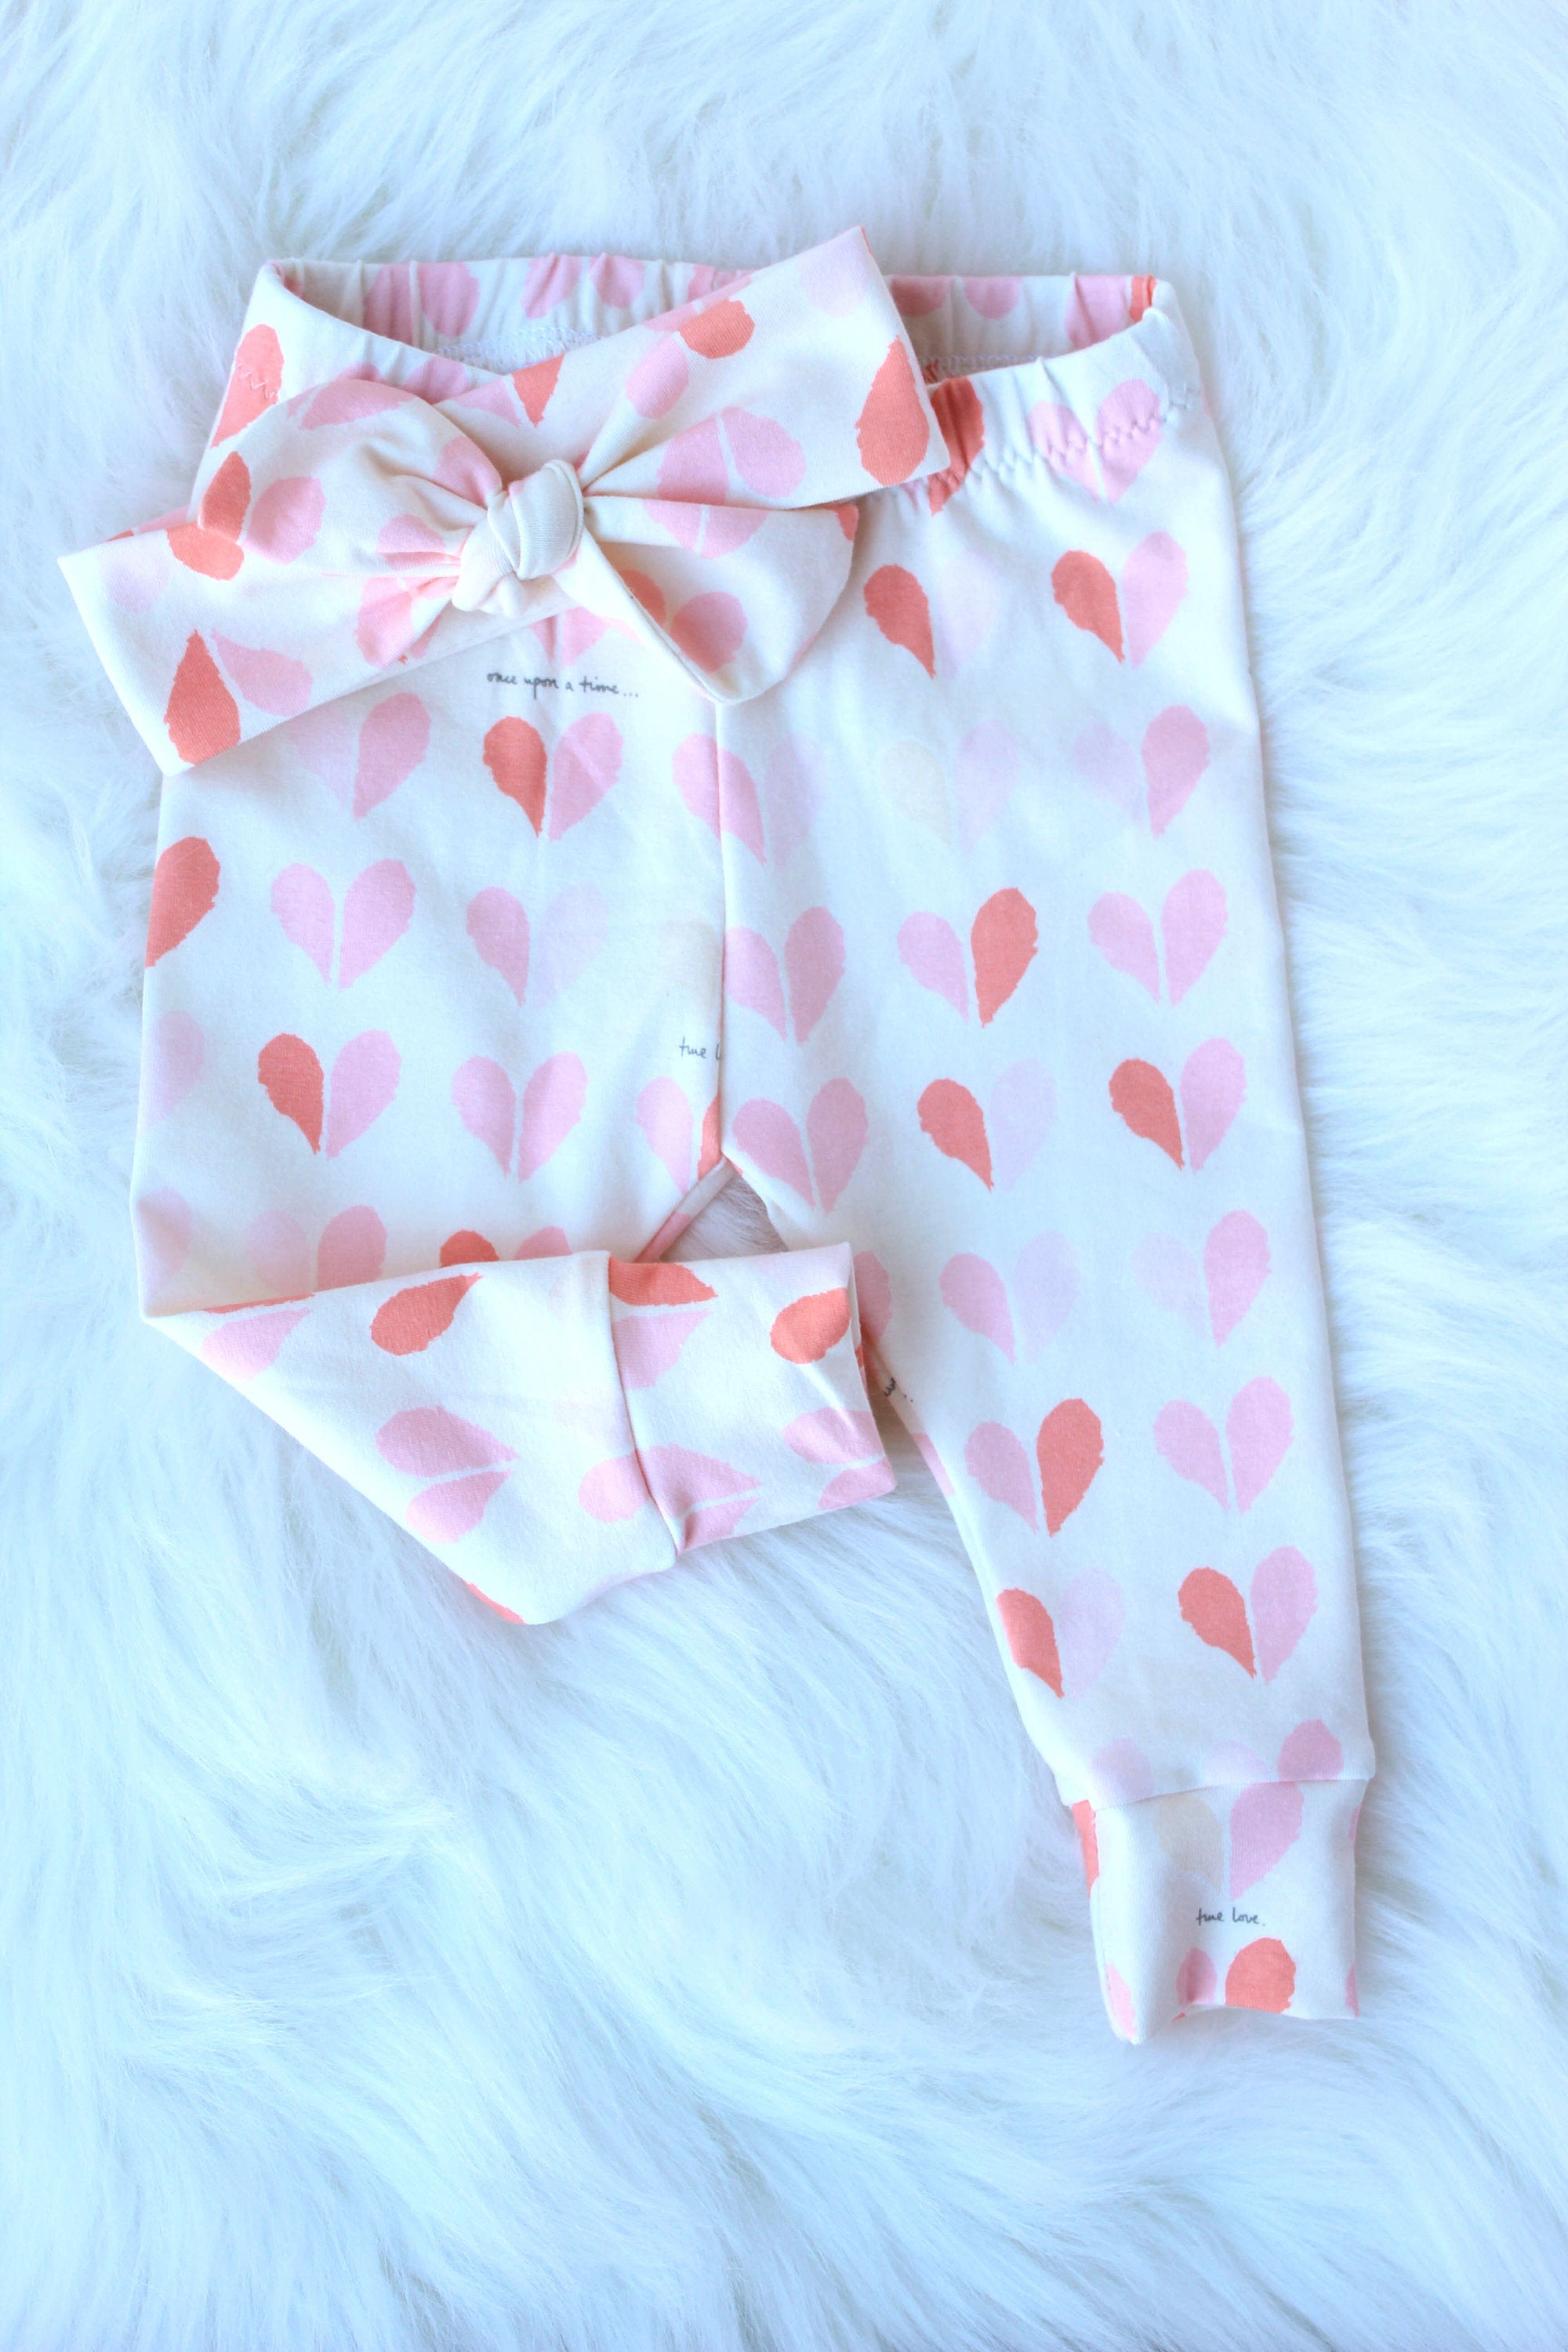 top knot headband and leggings with heart pattern